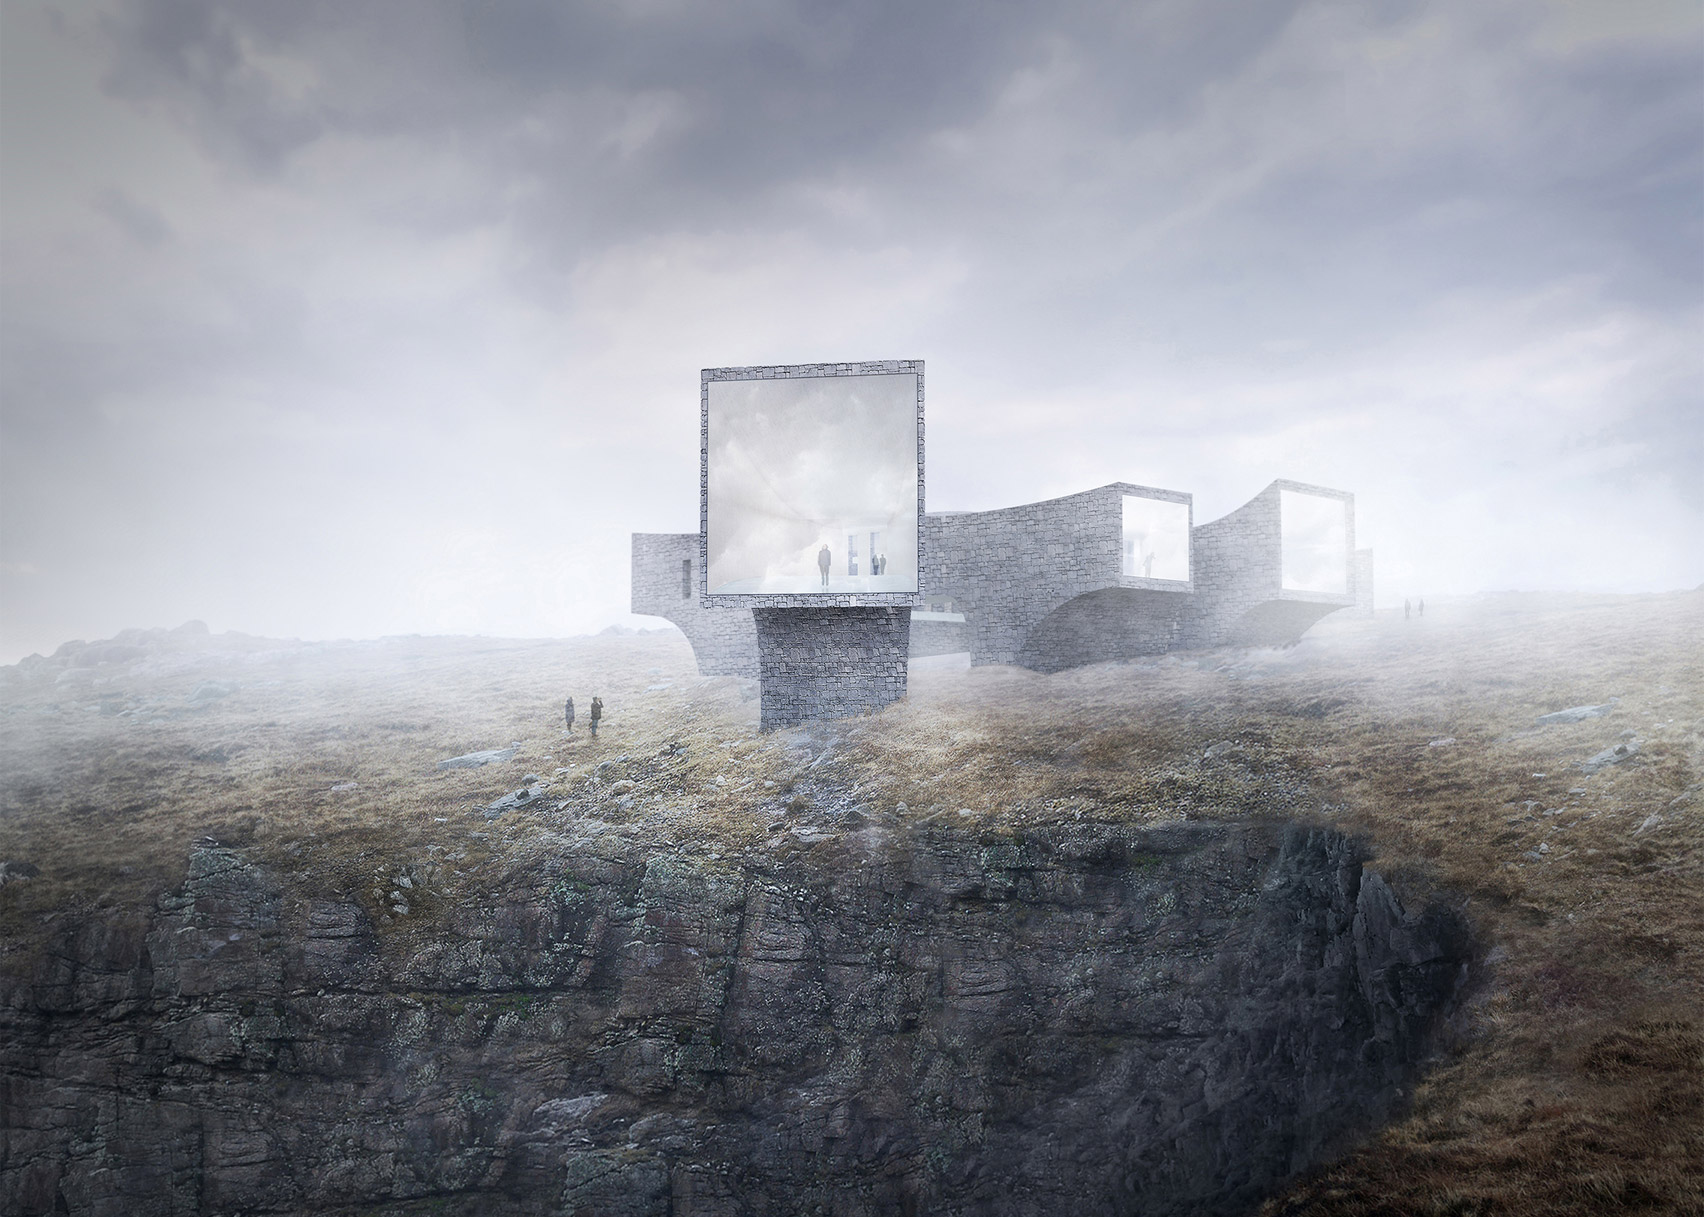 Cliffside visitor centre proposed for remote Outer Hebrides community